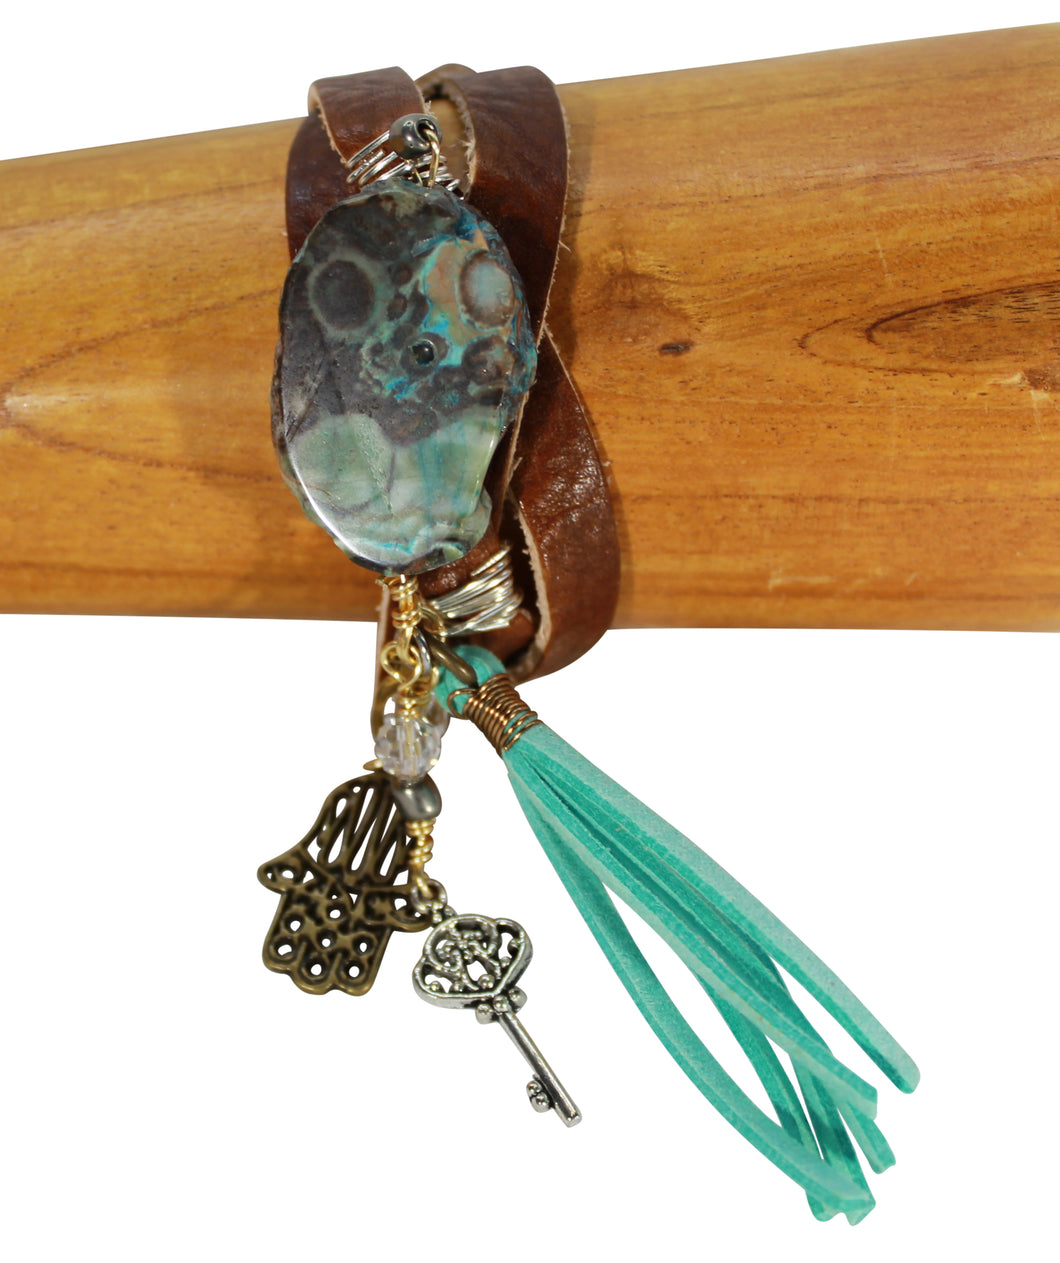 Vegetable tanned leather bracelet, turquoise stone, tassel charm bracelet, leather jewelry cuff